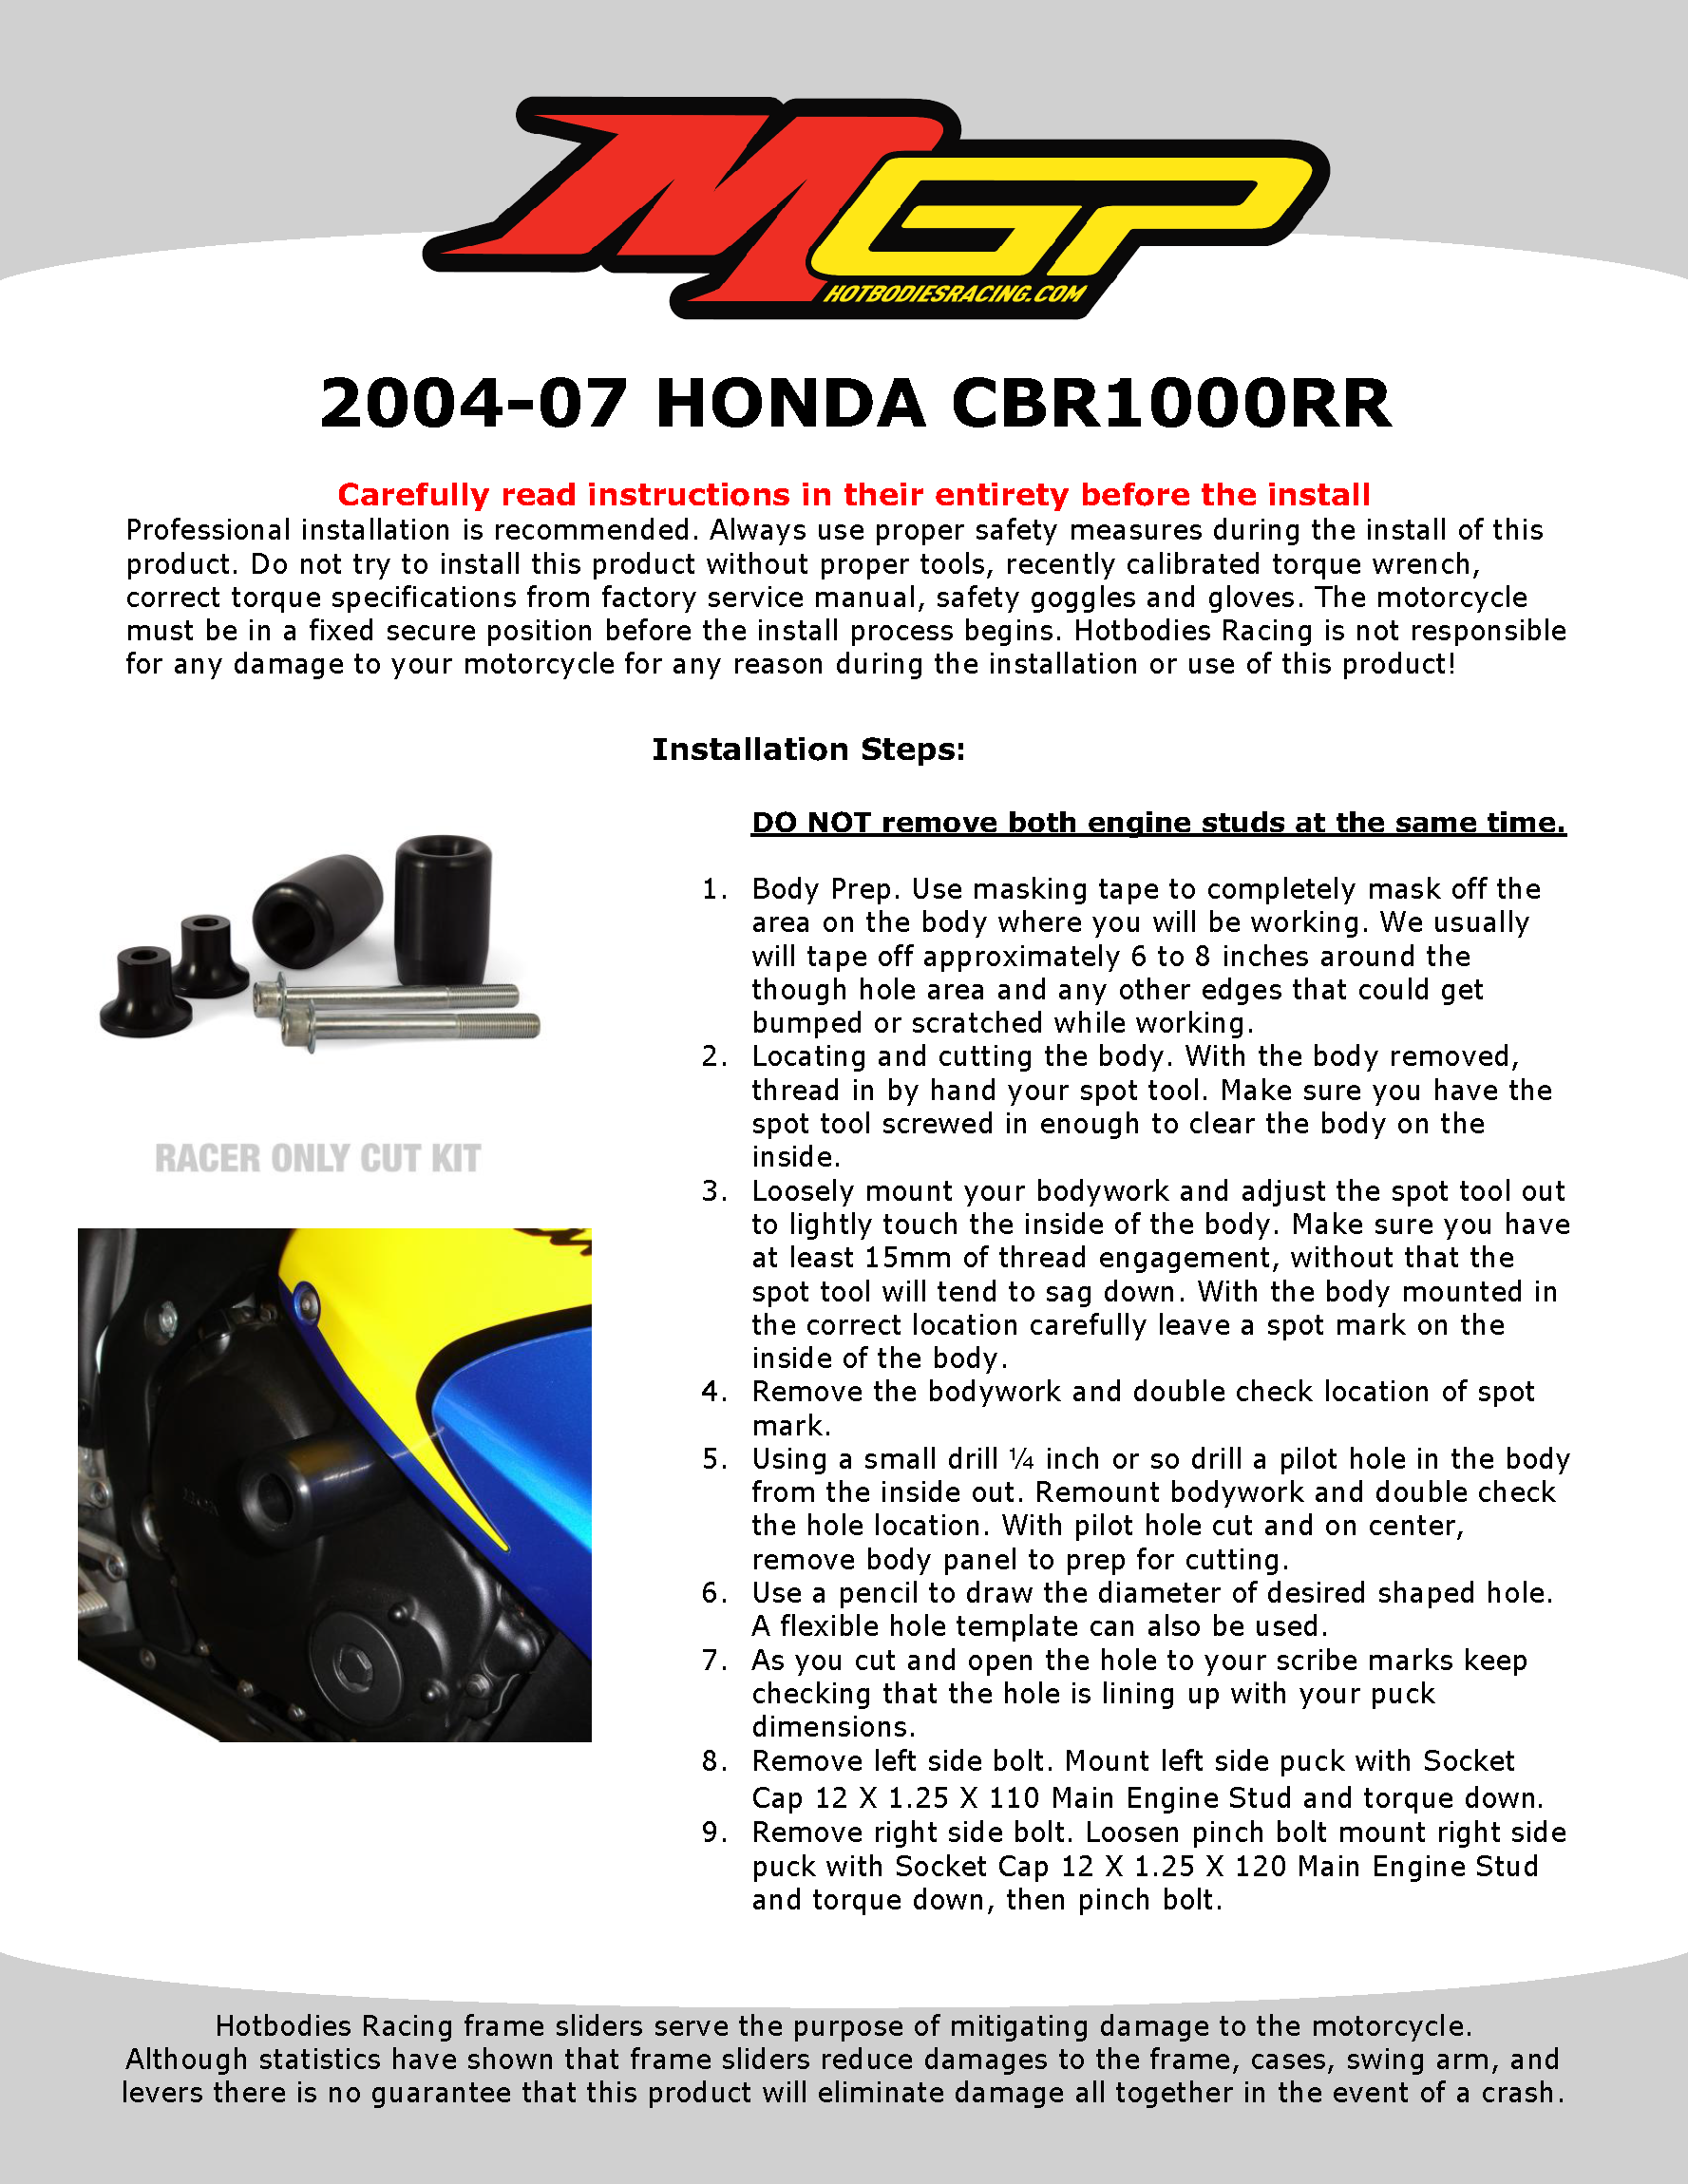 CBR1000RR 2006-07 Frame Sliders Cut